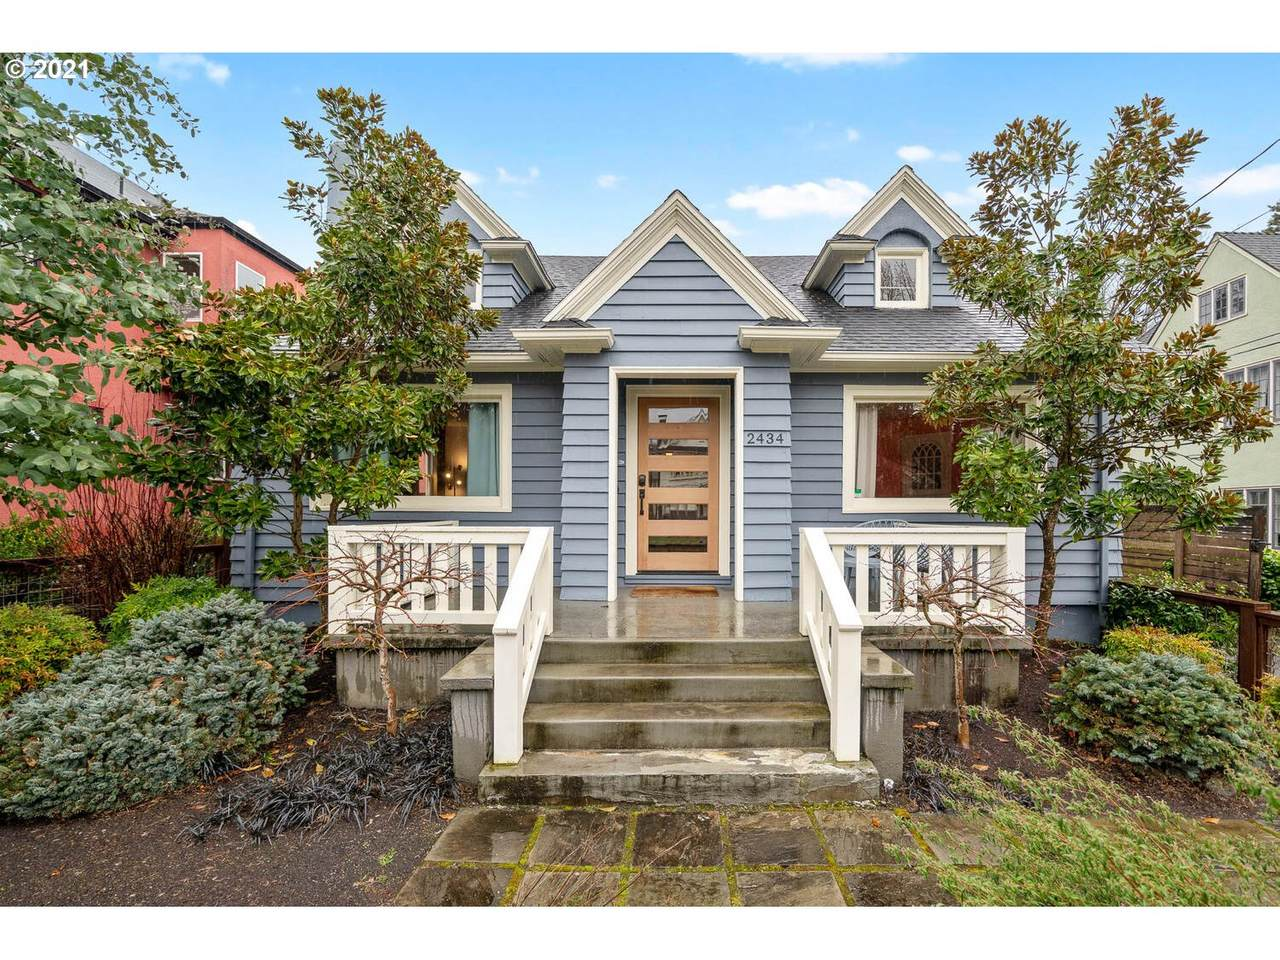 2434 15TH Ave - Photo 1